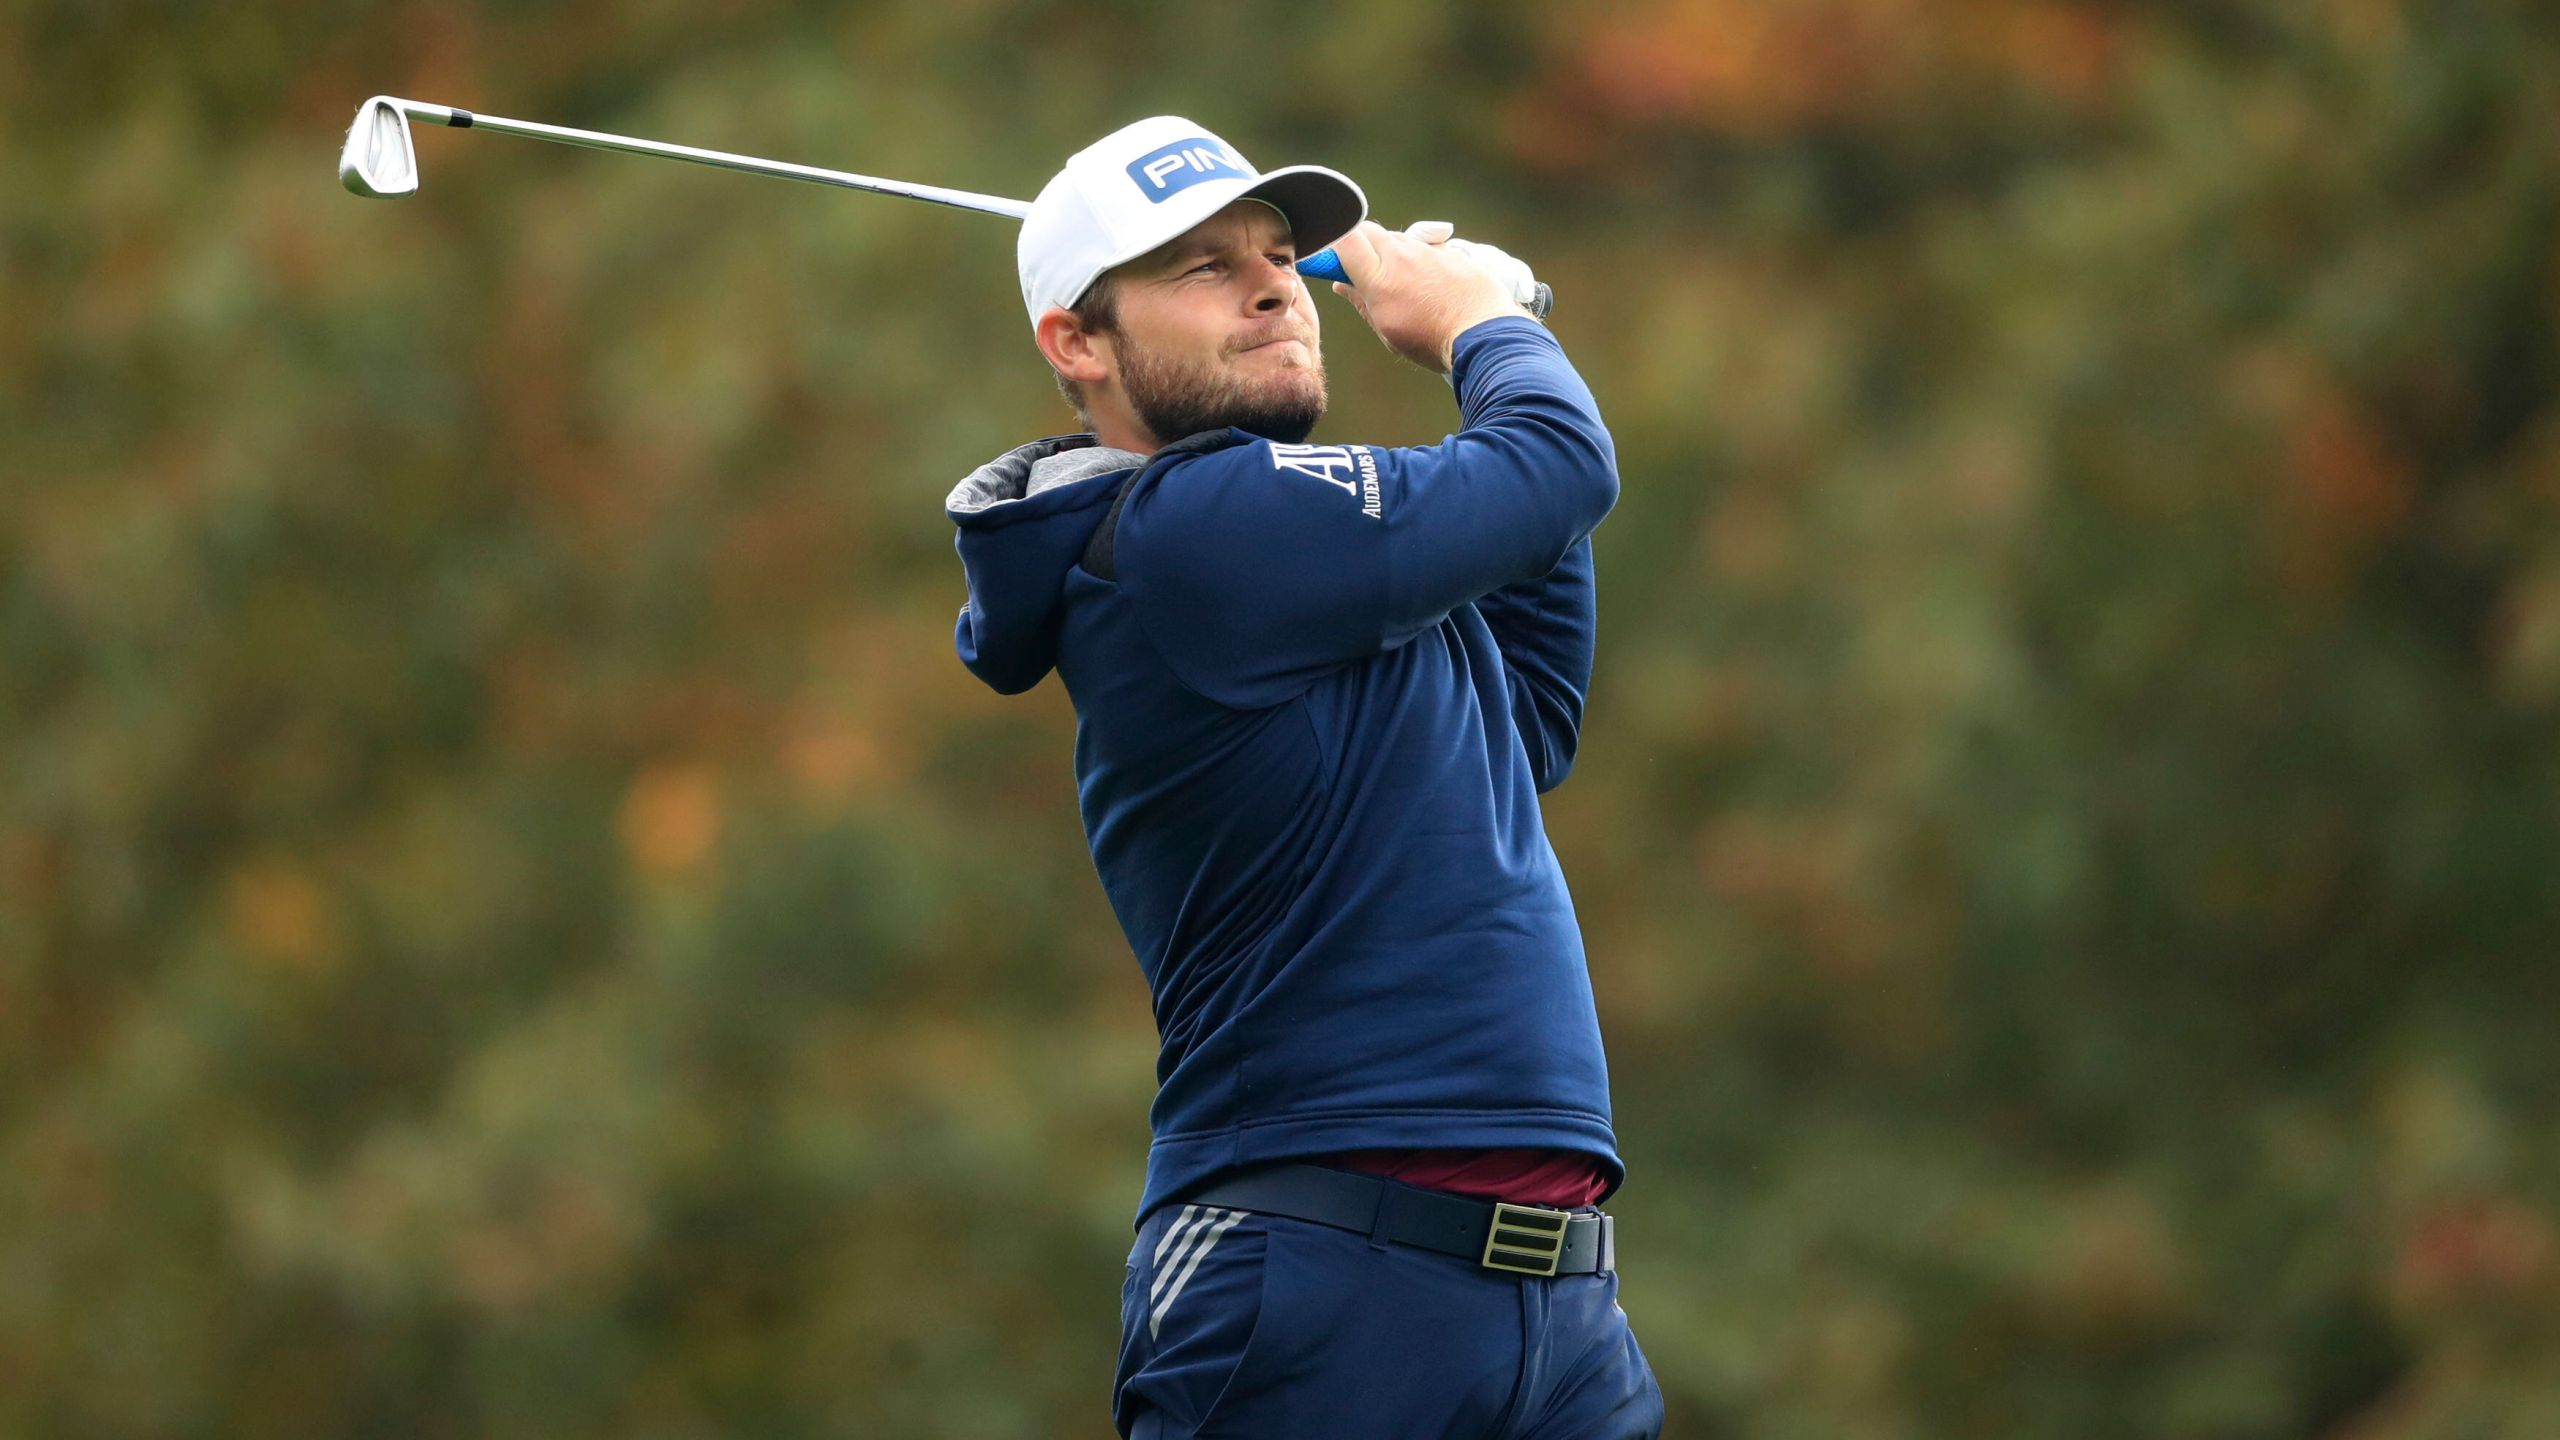 41 Bmw Pga Championship Pro Am Leaderboard Pictures